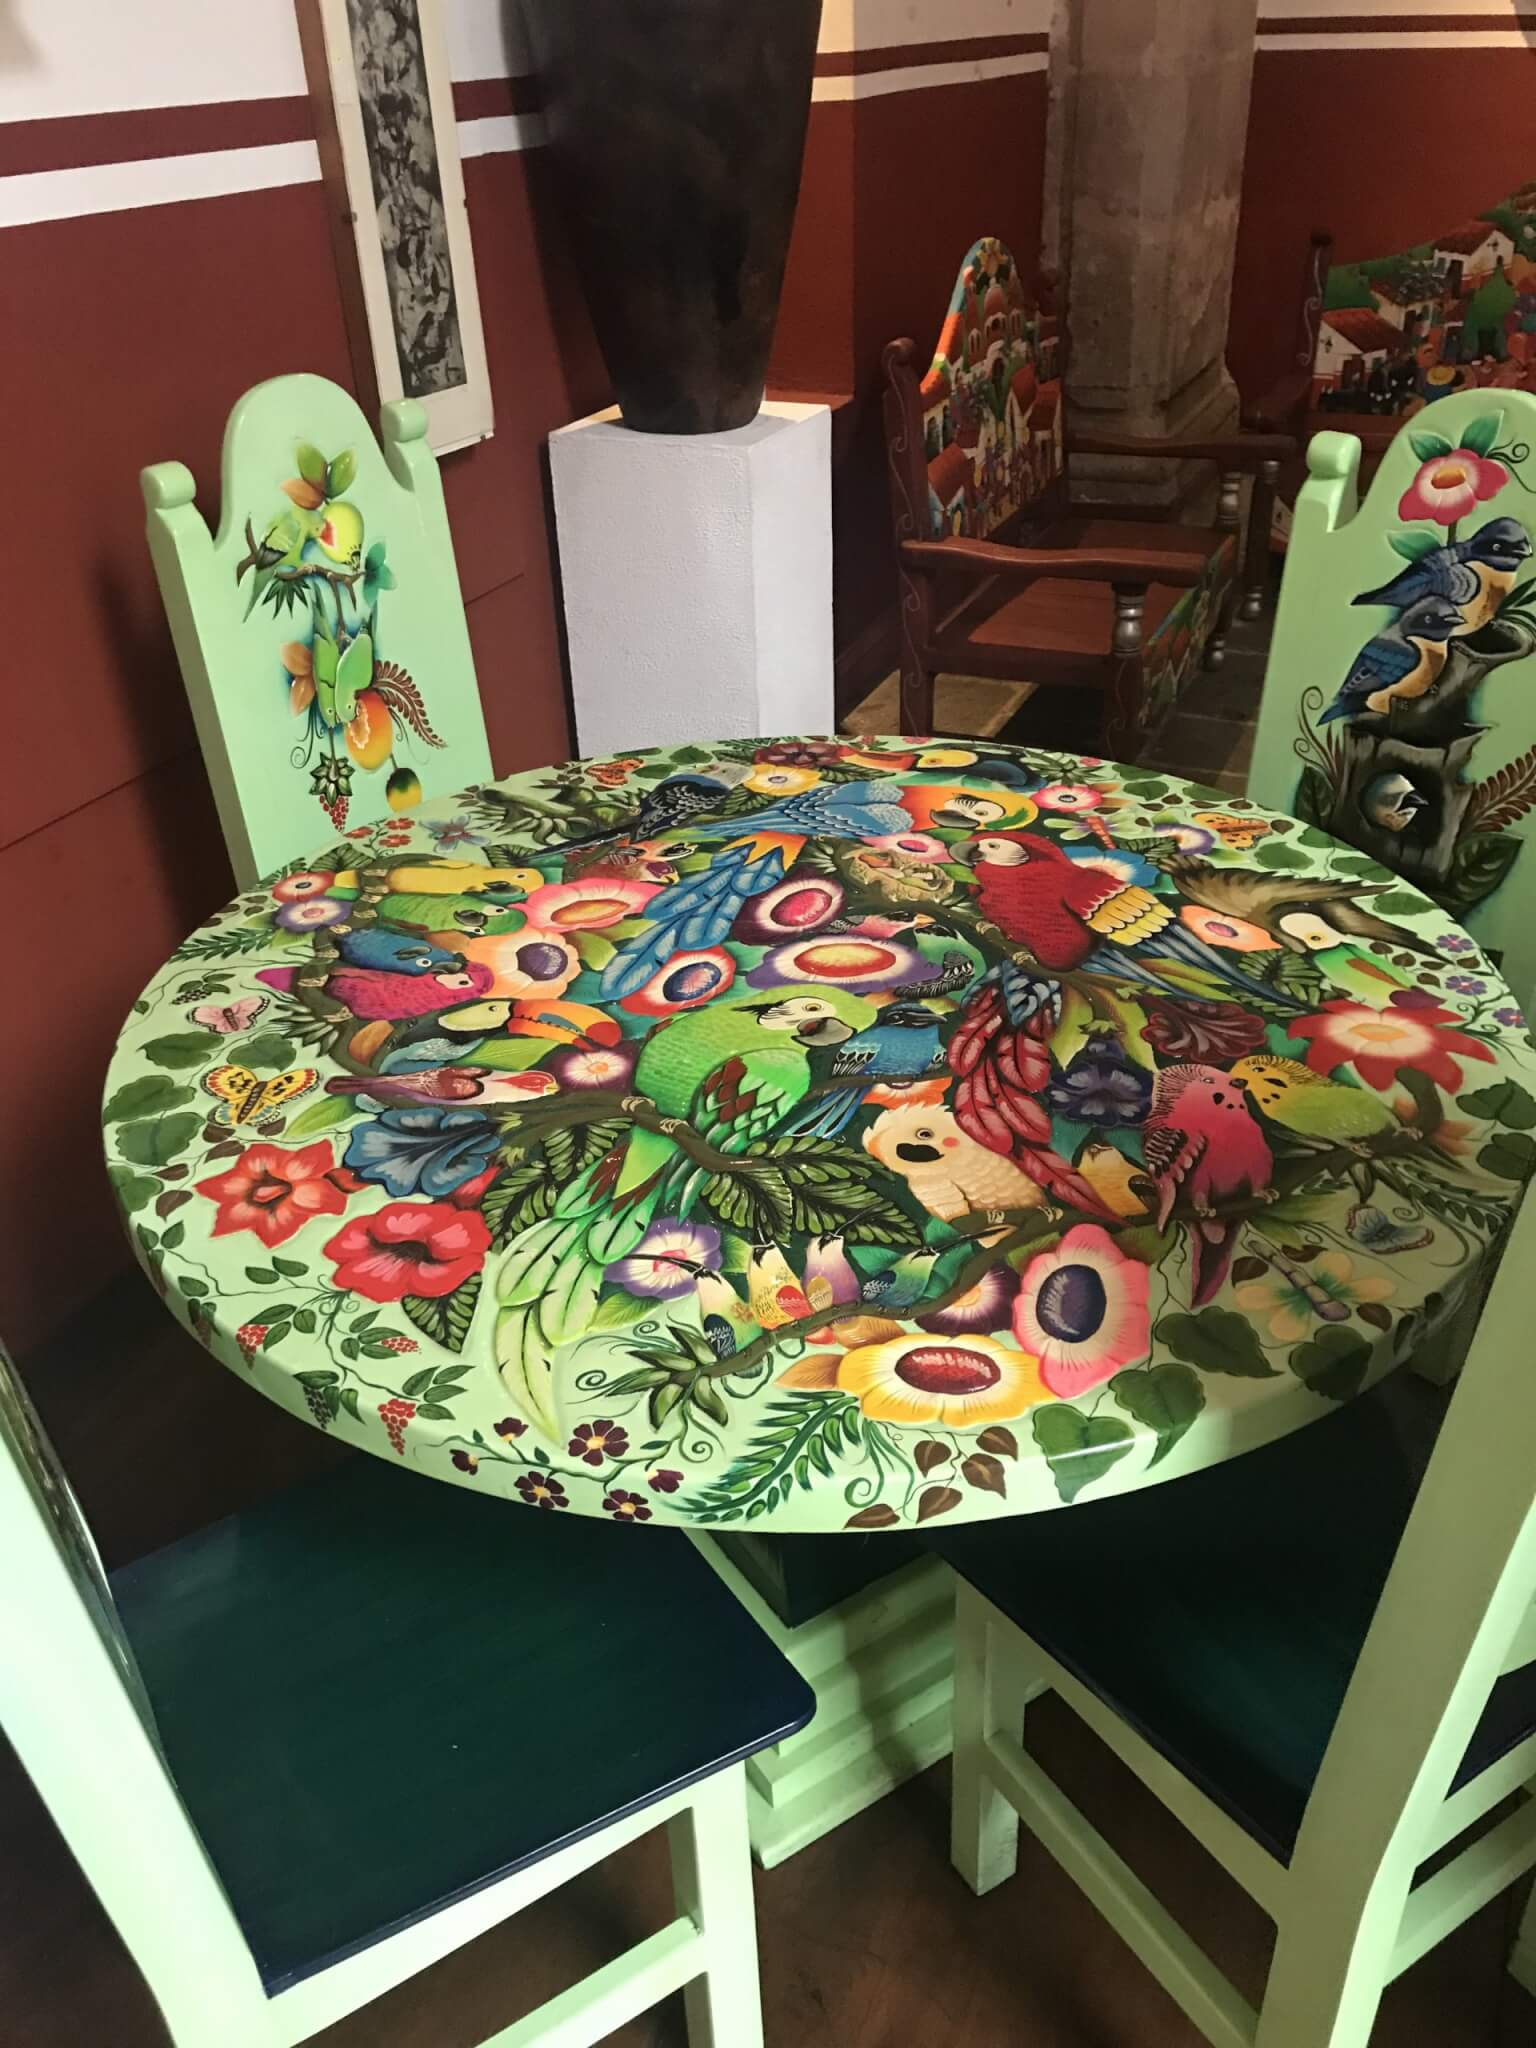 House of Handicrafts   Painted Table   Morelia